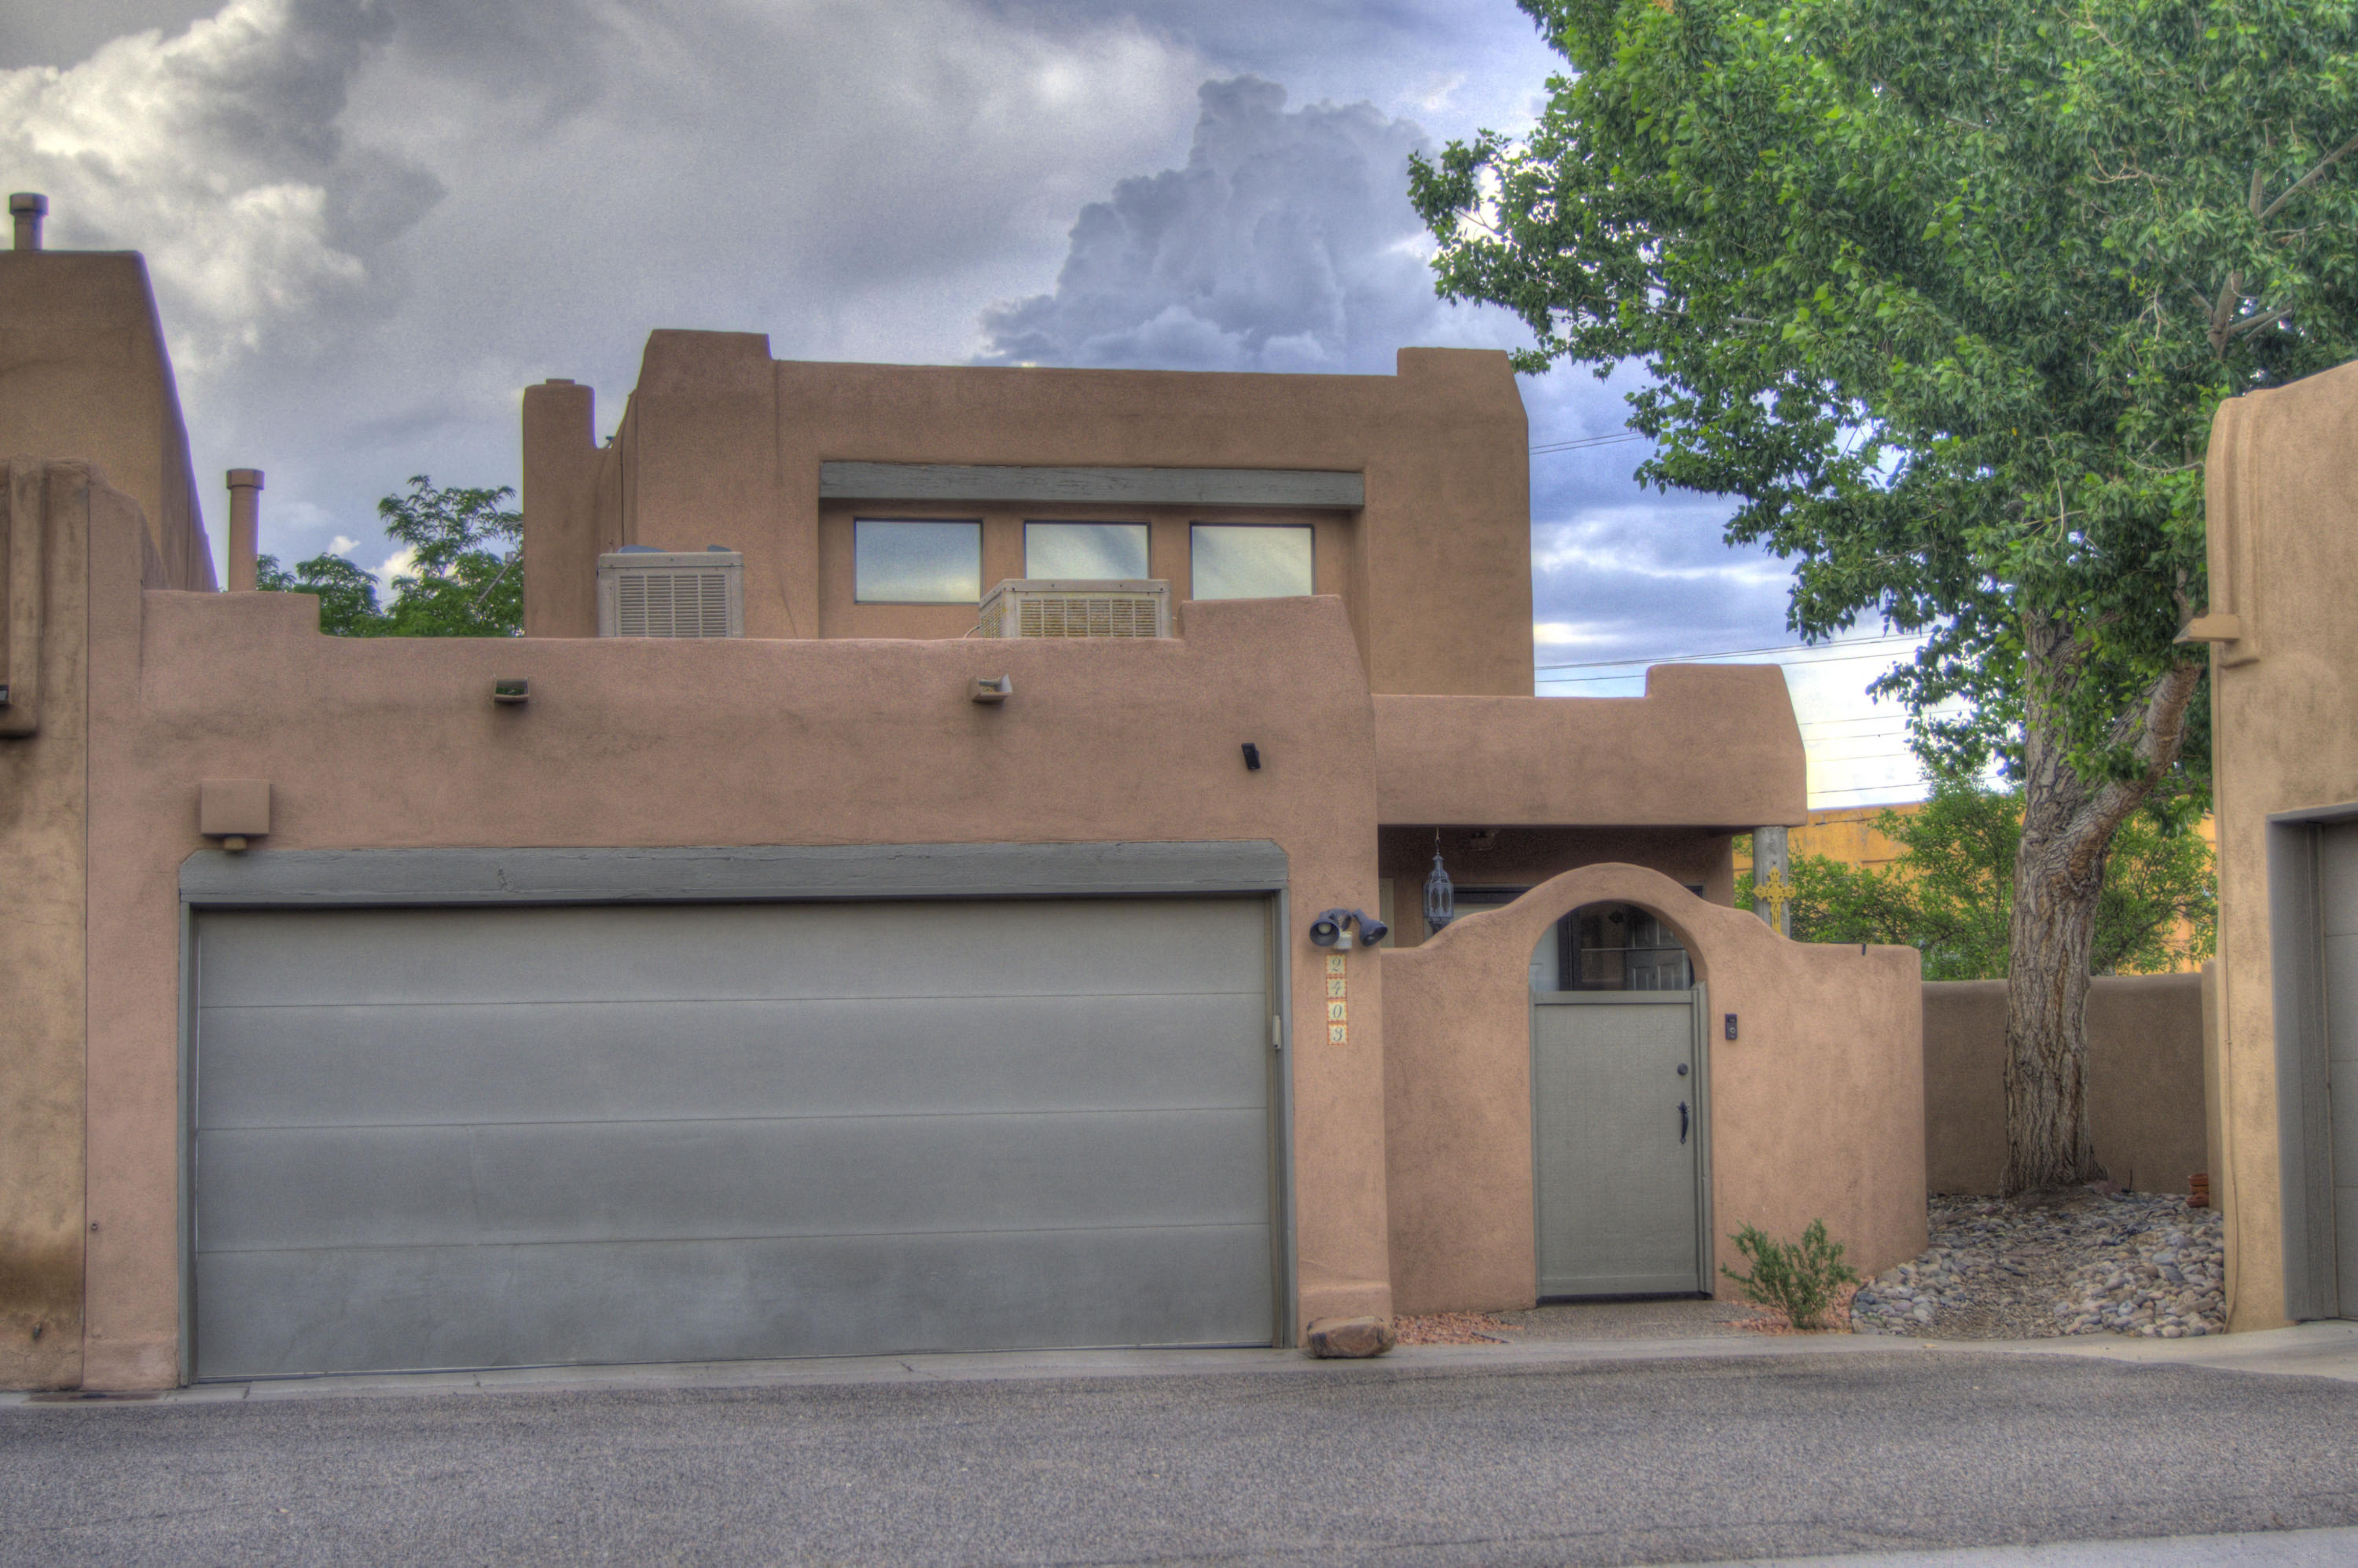 2403 northwest Circle, Albuquerque NM 87104